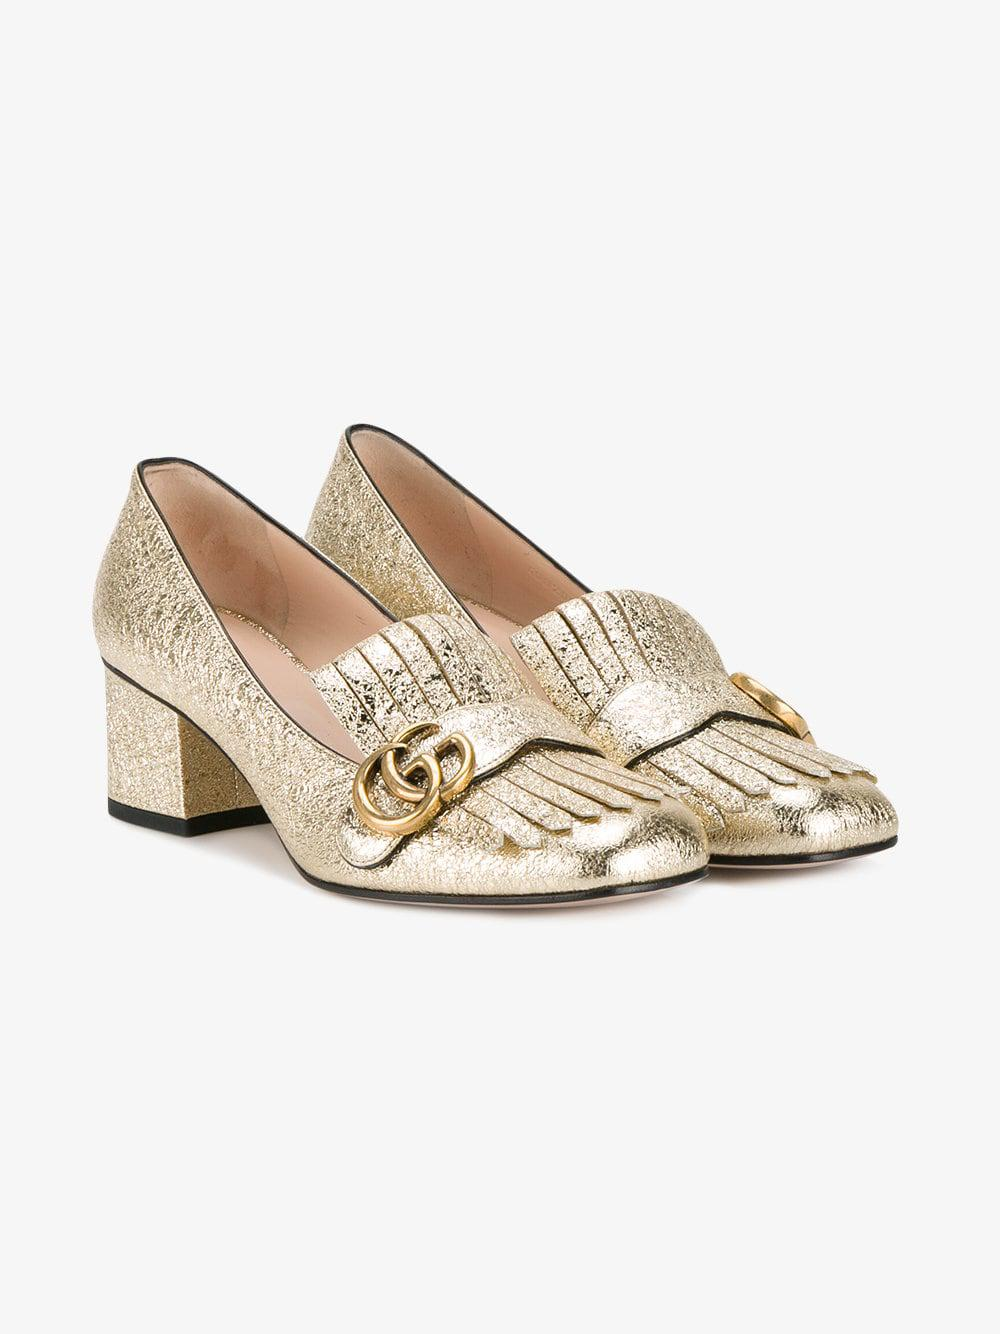 f2e20603f279 Lyst - Gucci Marmont Leather Mid Heel Pumps in Metallic - Save 18%